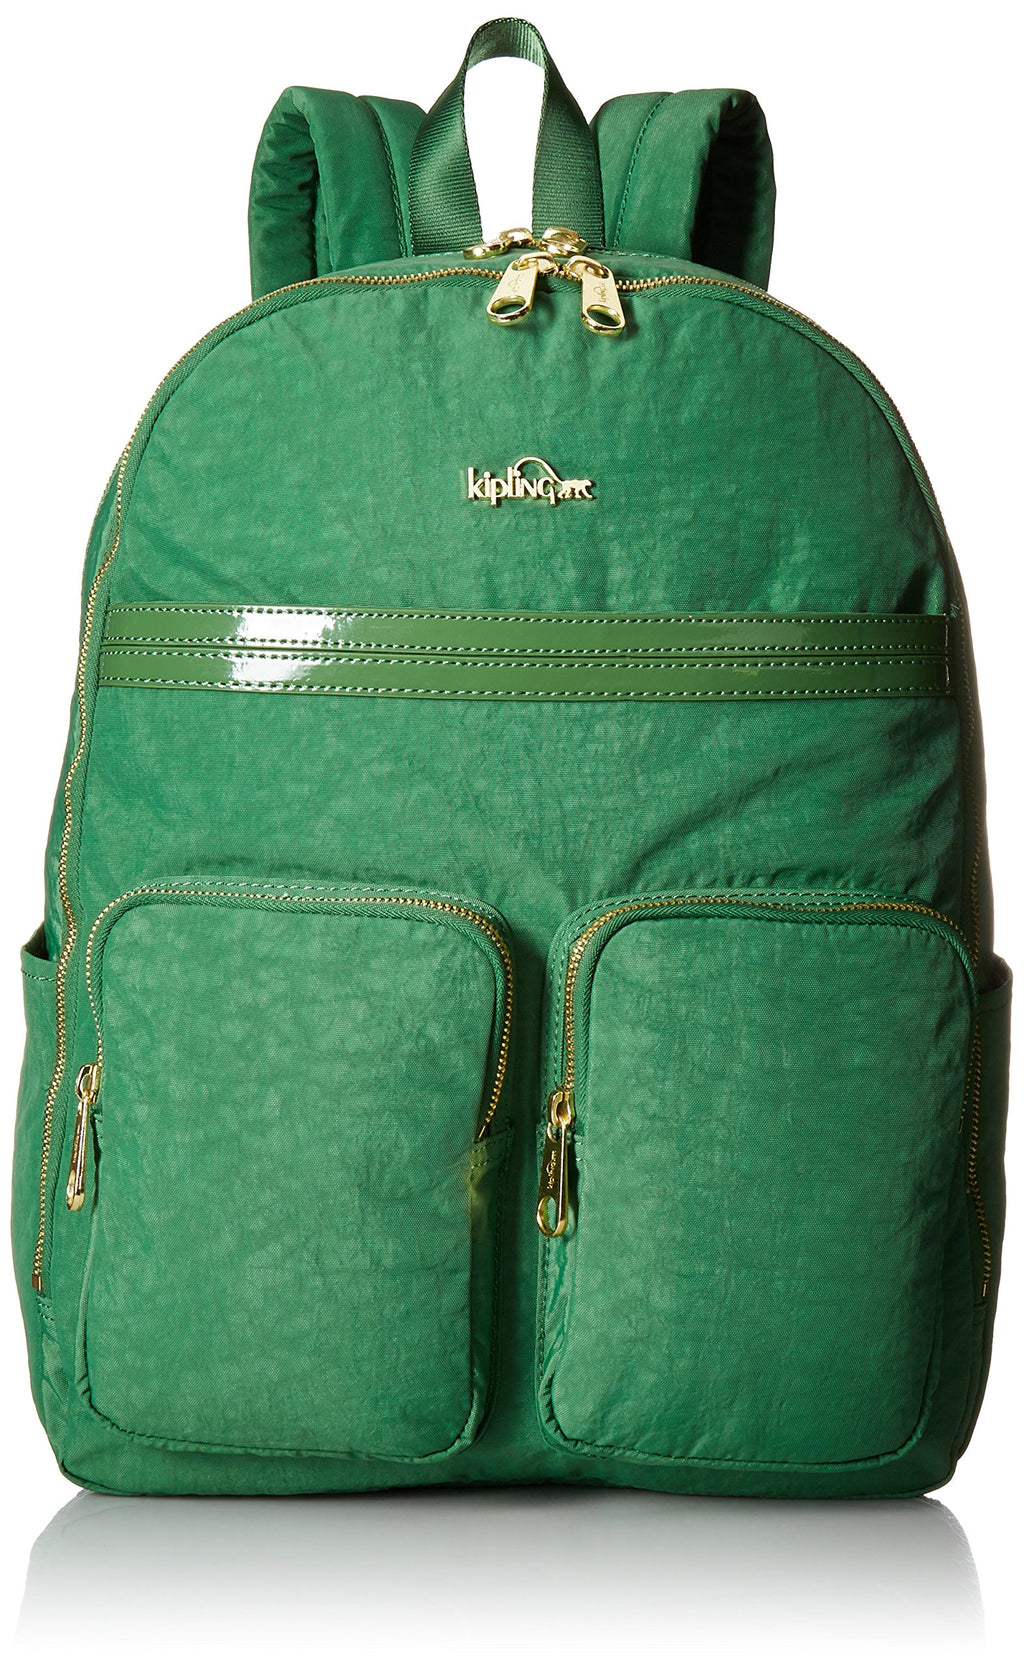 Kipling Tina Backpack, Emerald Dream Patent Combo, One Size